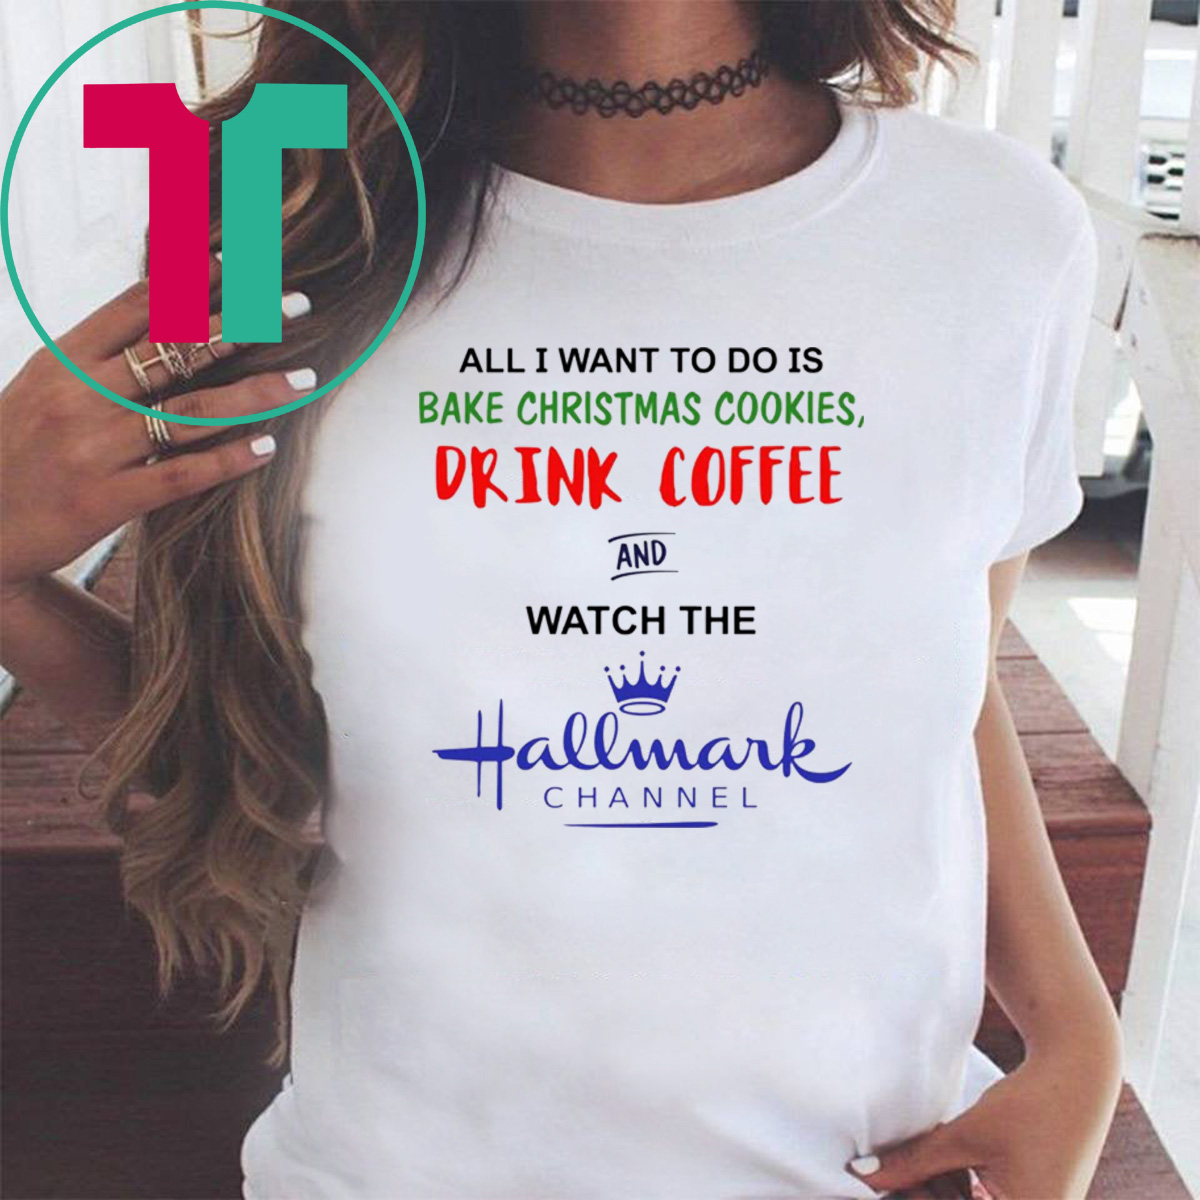 Christmas Cookies Hallmark.All I Want To Do Is Bake Christmas Cookies Drink Beer And Watch The Hallmark Shirt